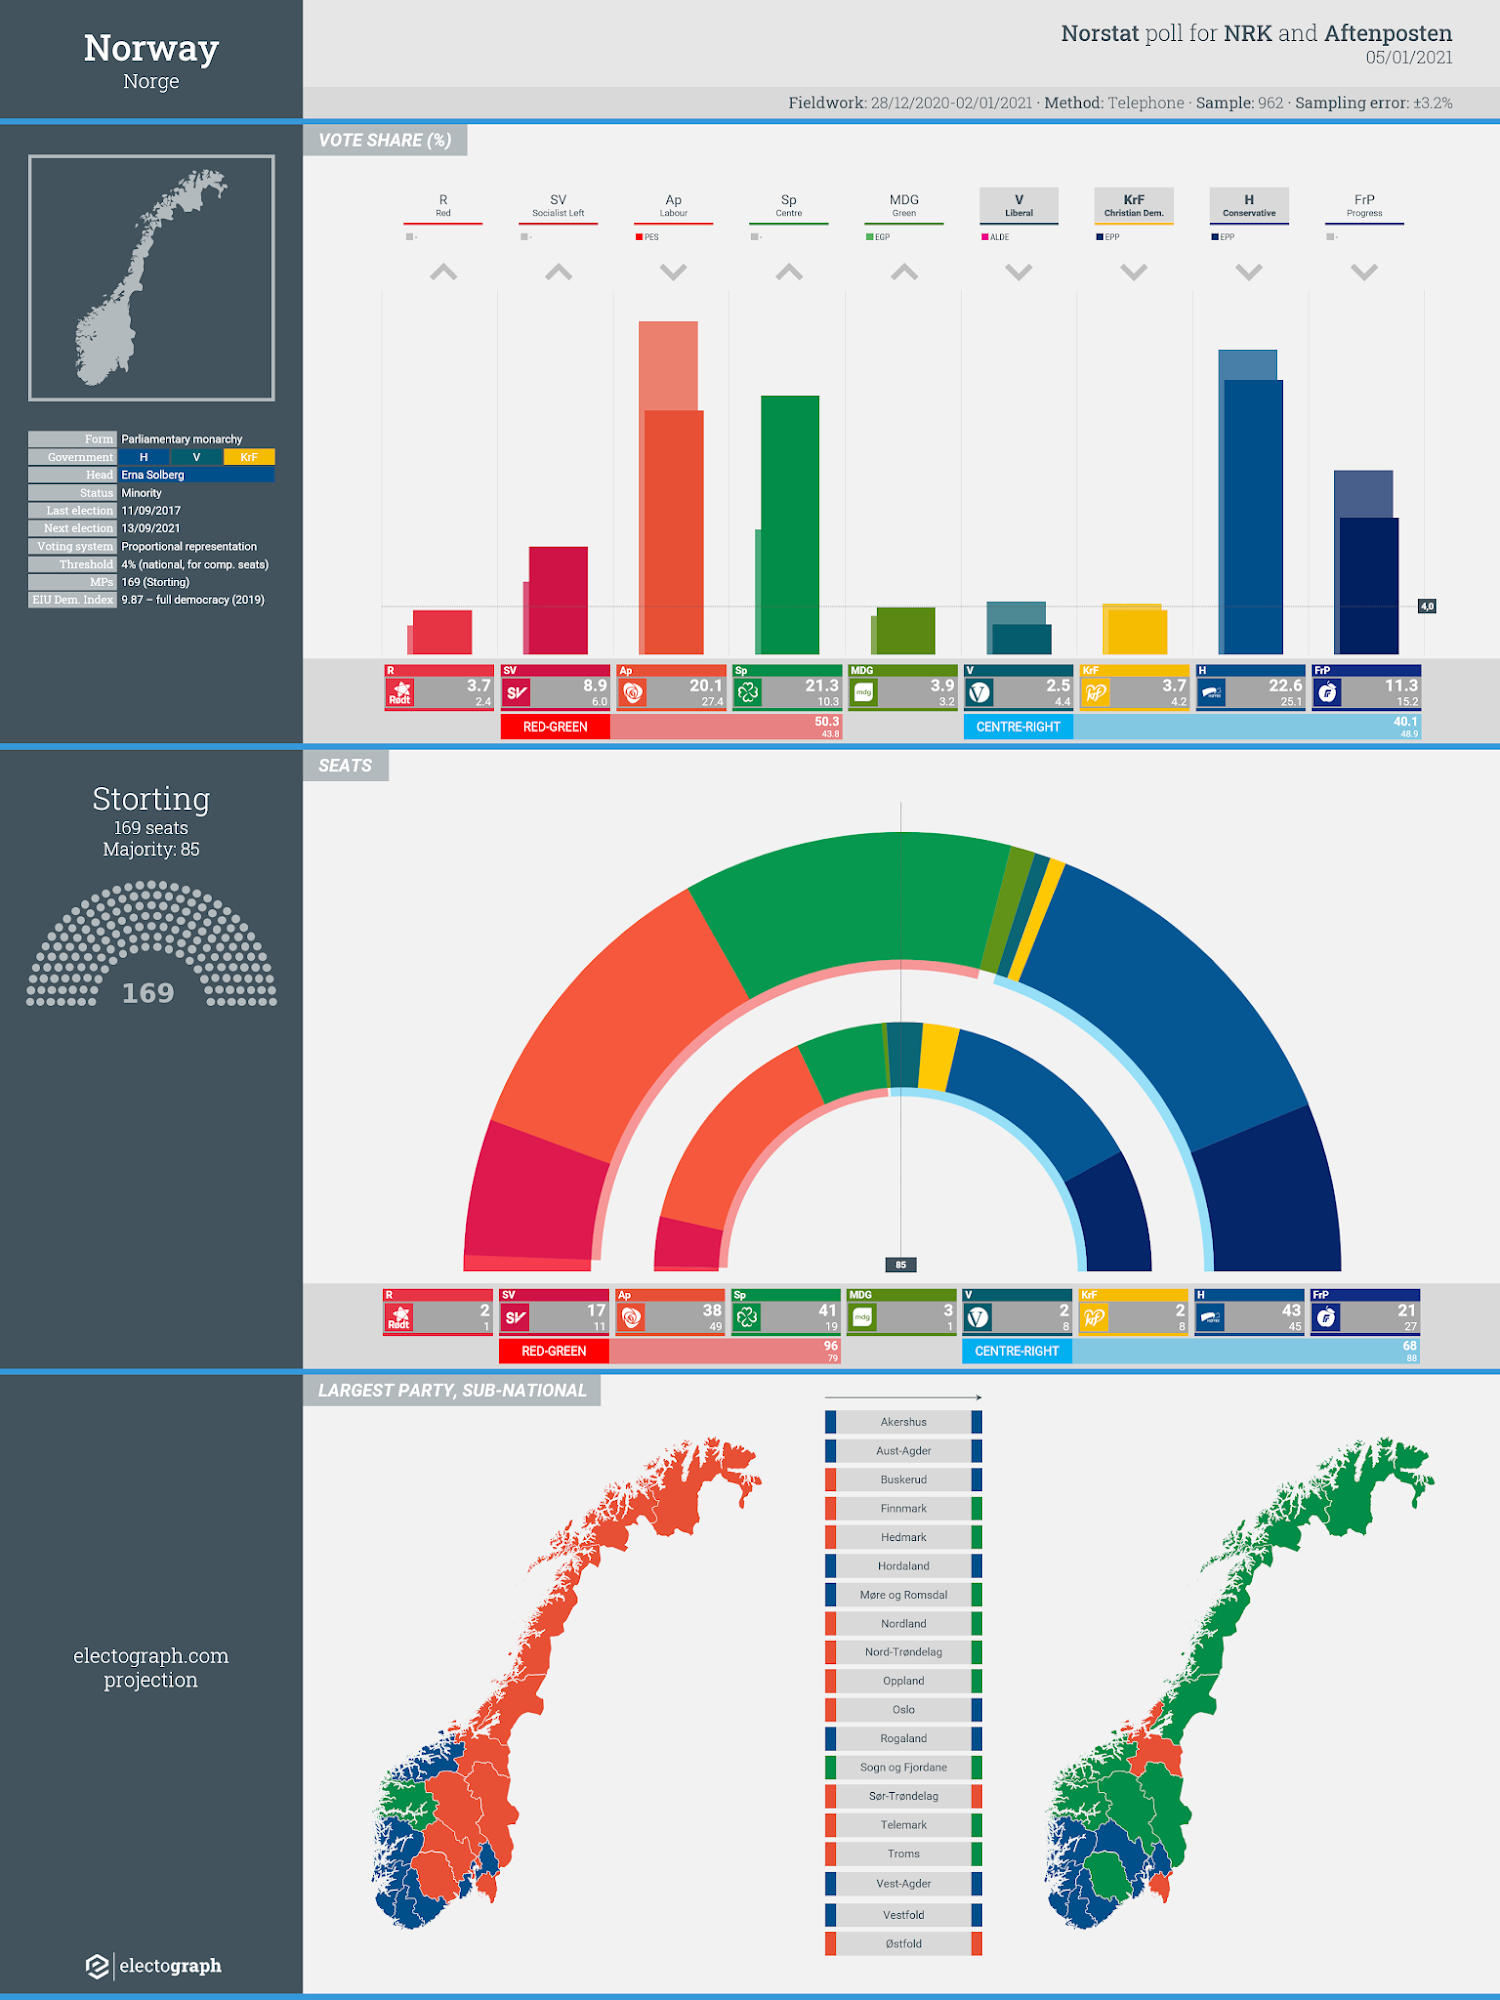 NORWAY: Norstat poll chart for NRK and Aftenposten, 3 February 2021